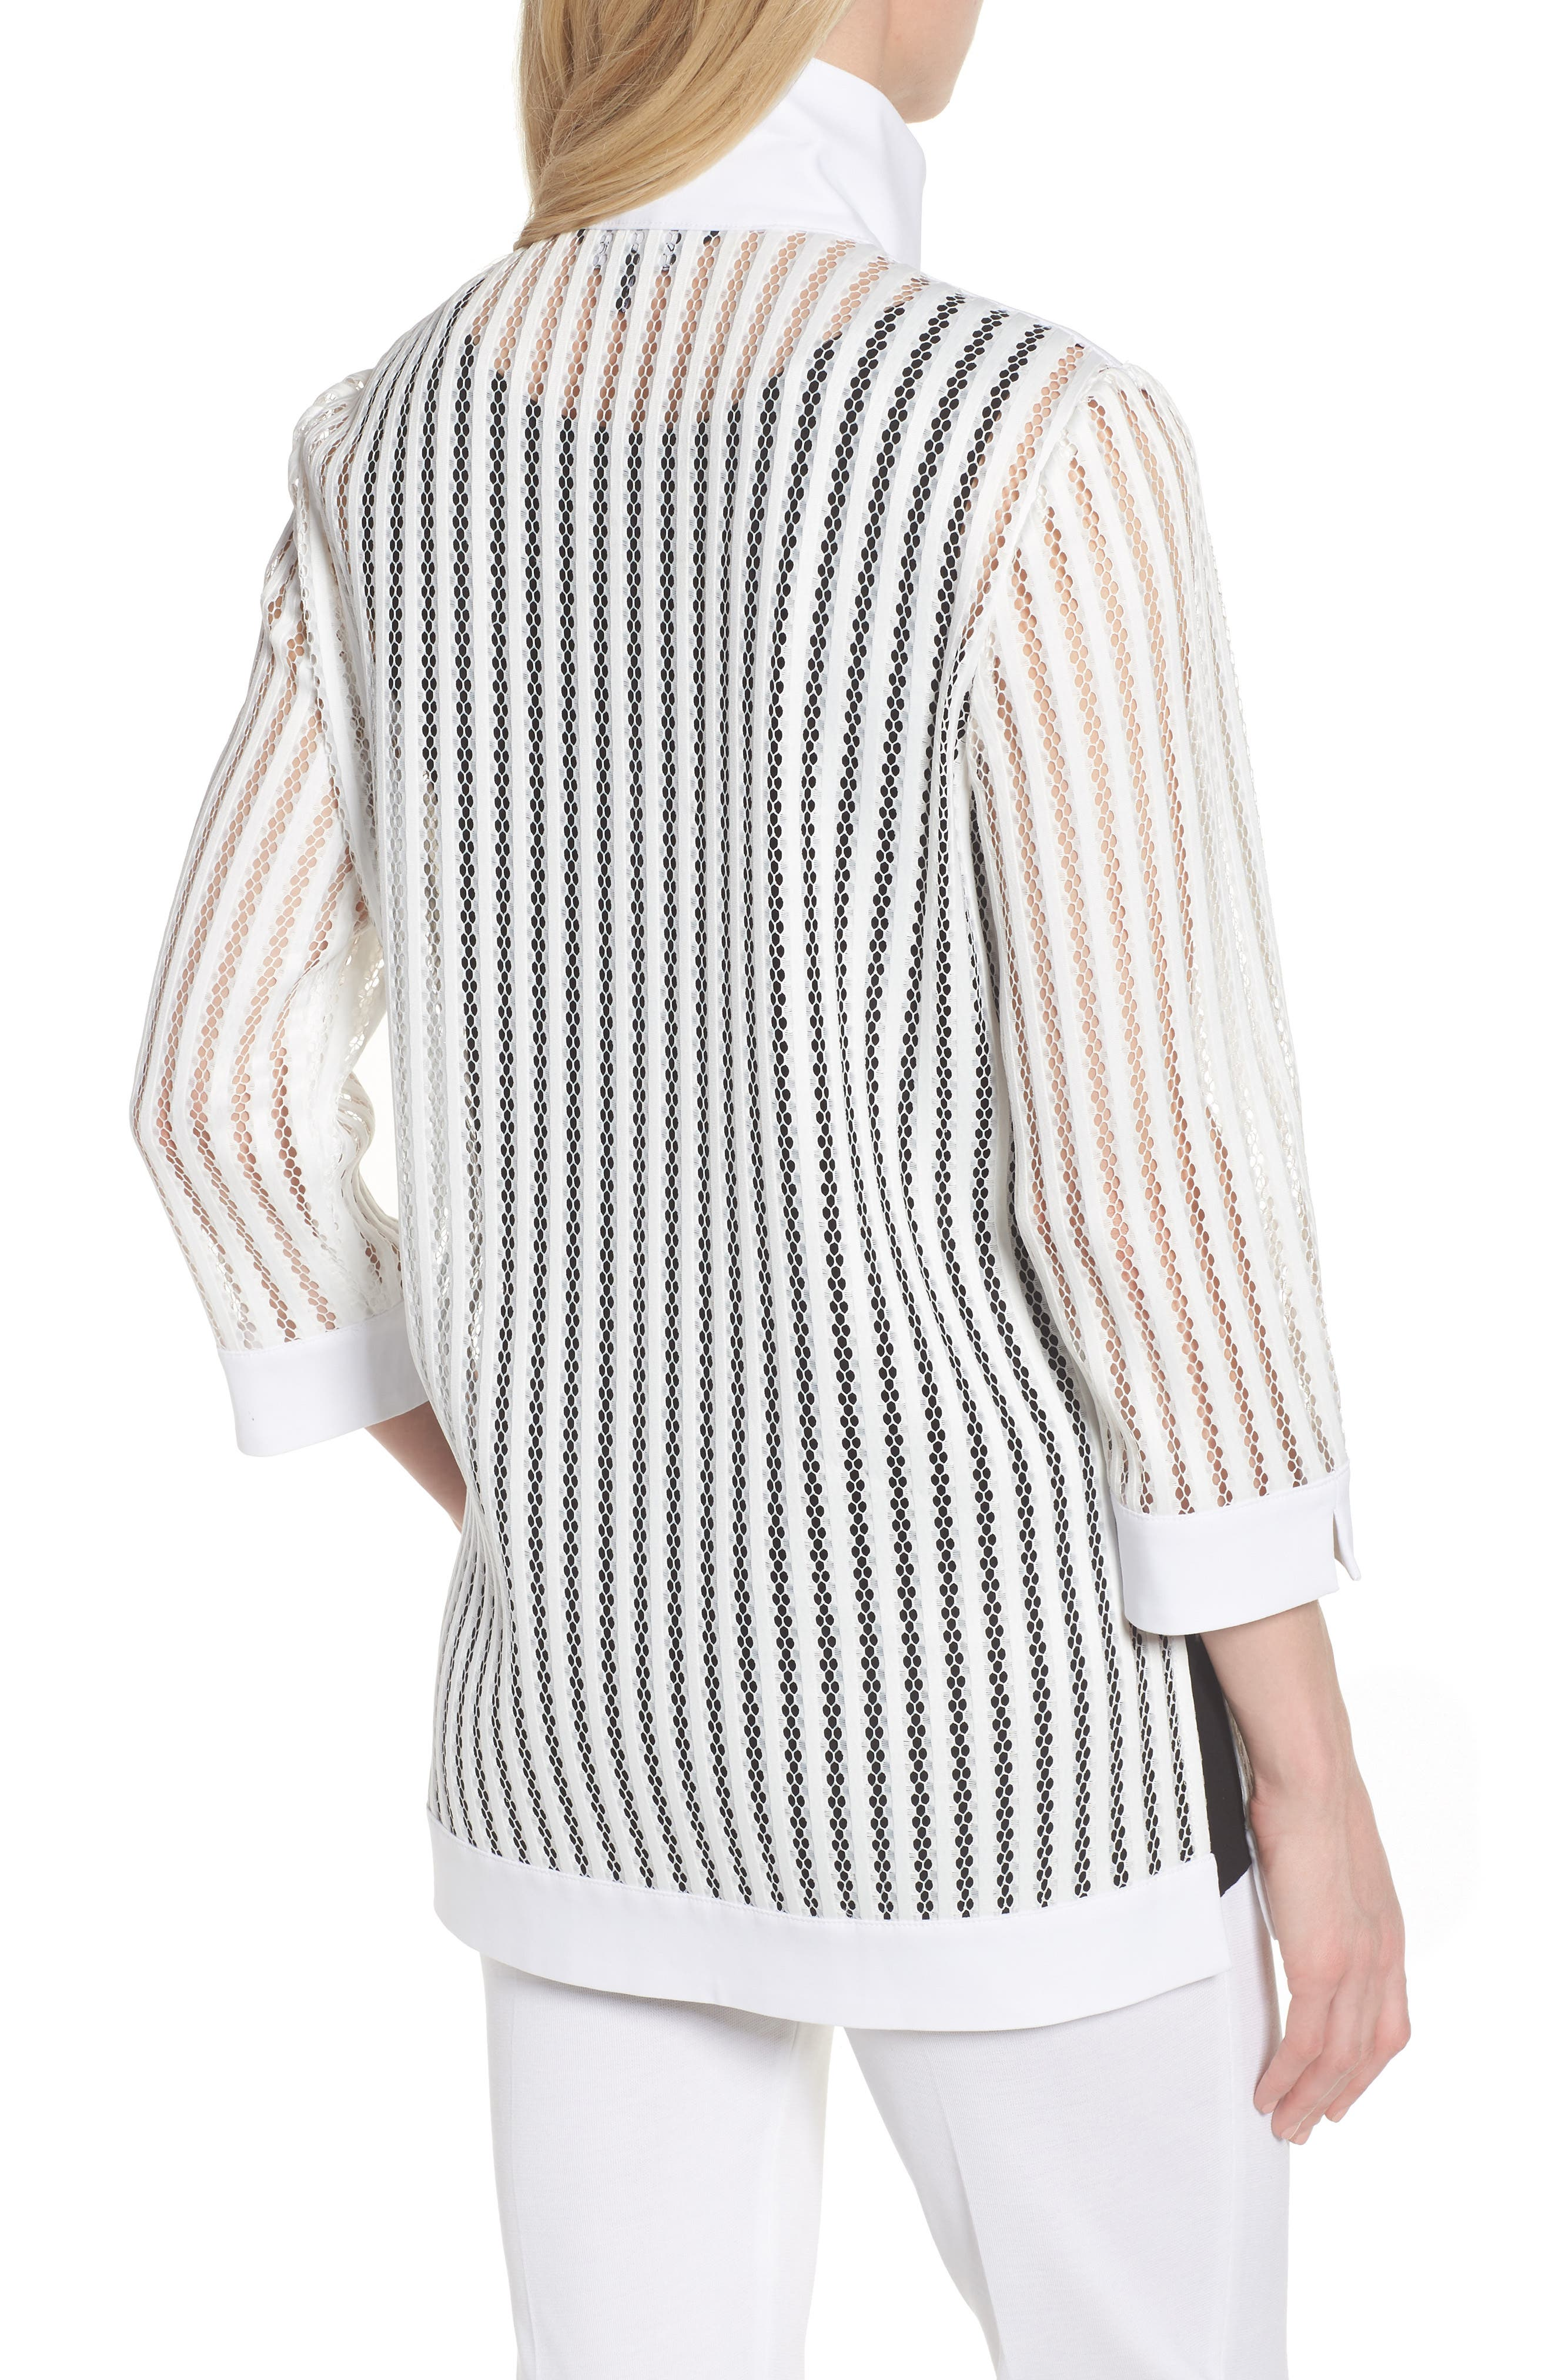 Ming Mang Open Stitch Sweater Jacket,                             Alternate thumbnail 2, color,                             102